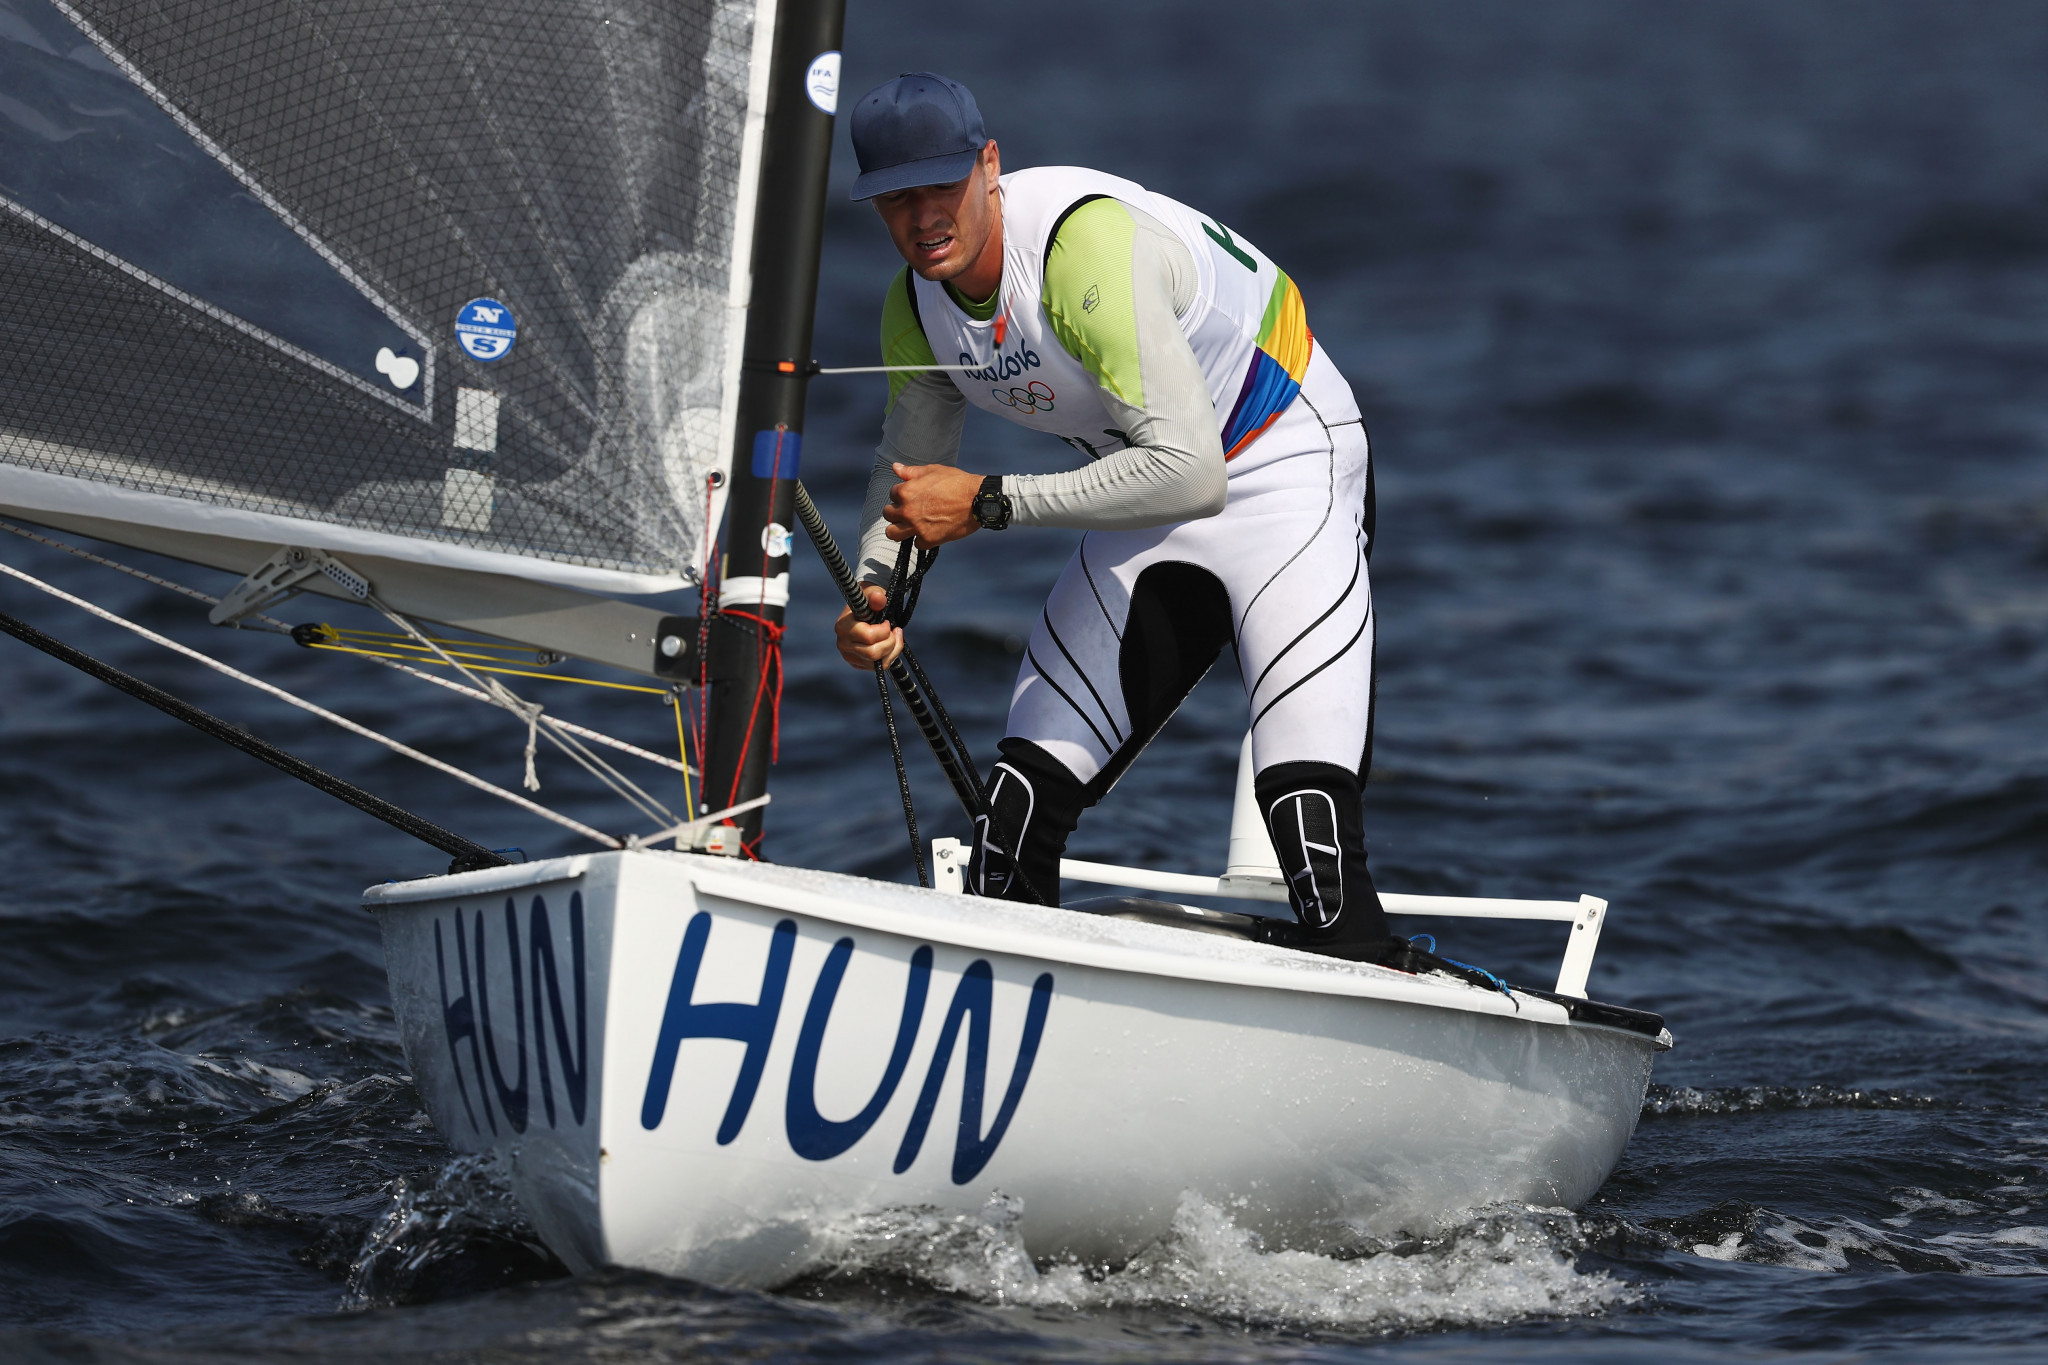 Hungary's Zsombor Berecz was a clear winner of the Finn European title in Vilamoura today ©Getty Images